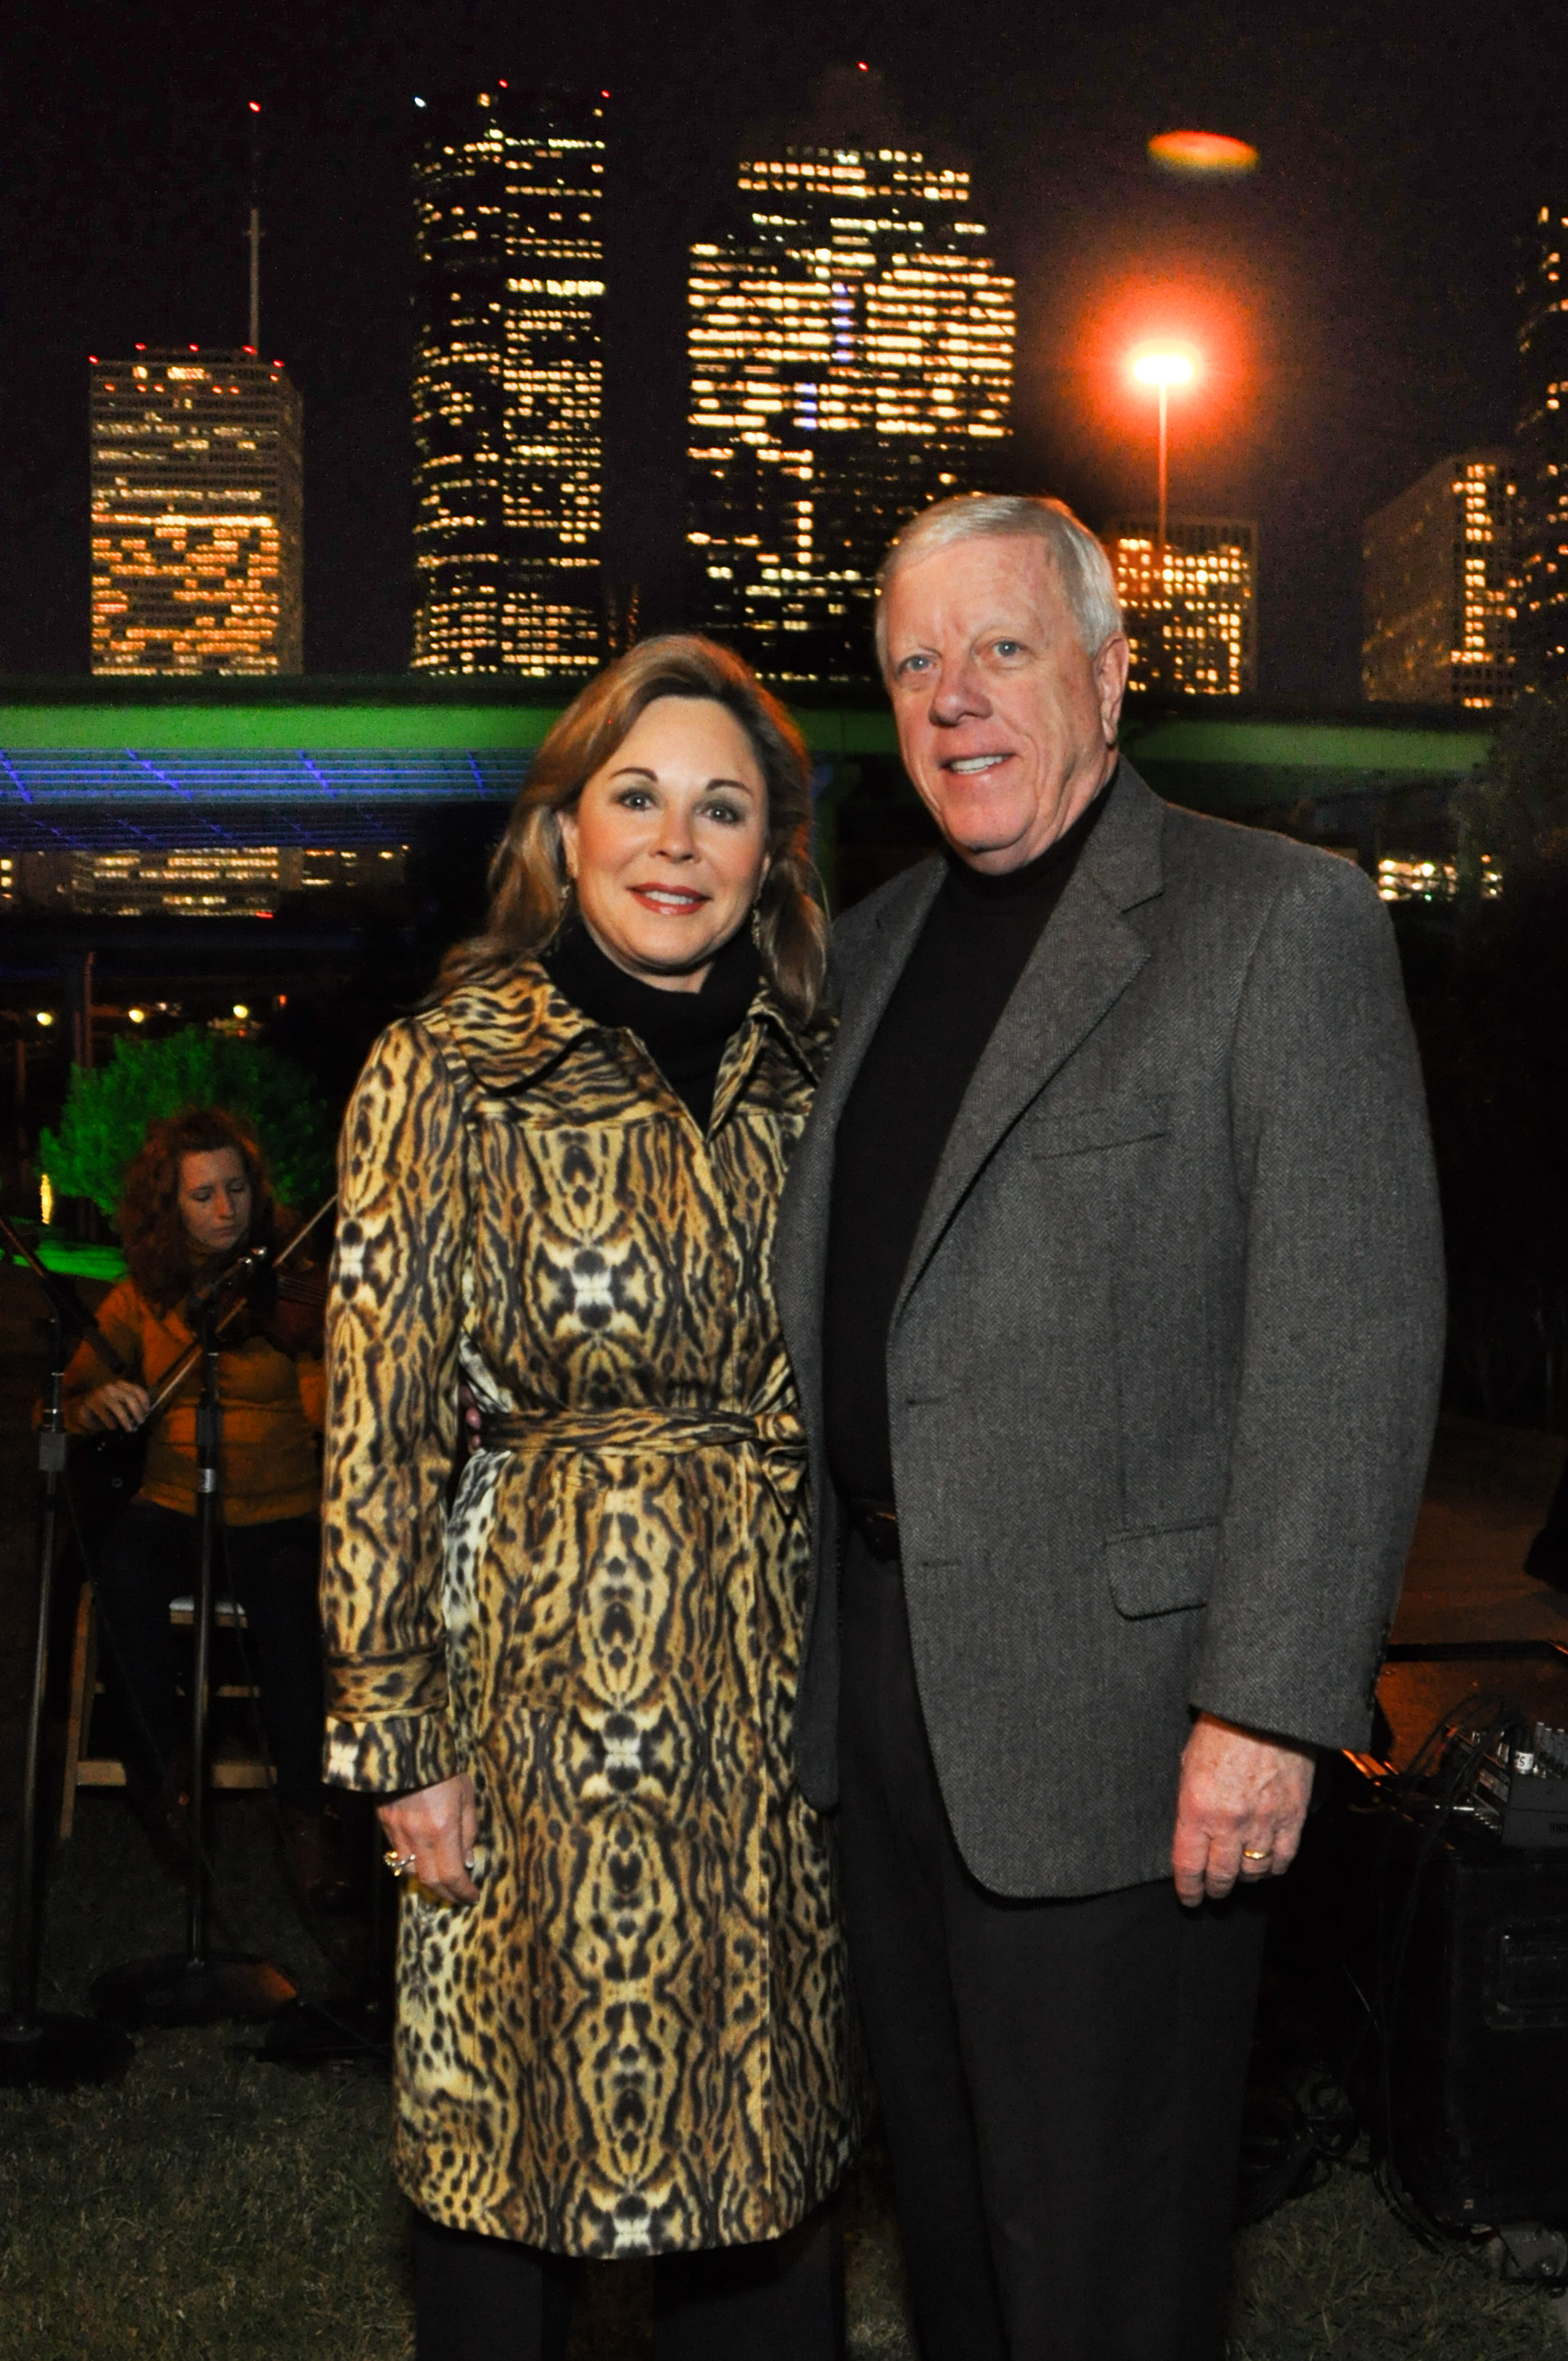 Philanthropic People: Rich and Nancy Kinder